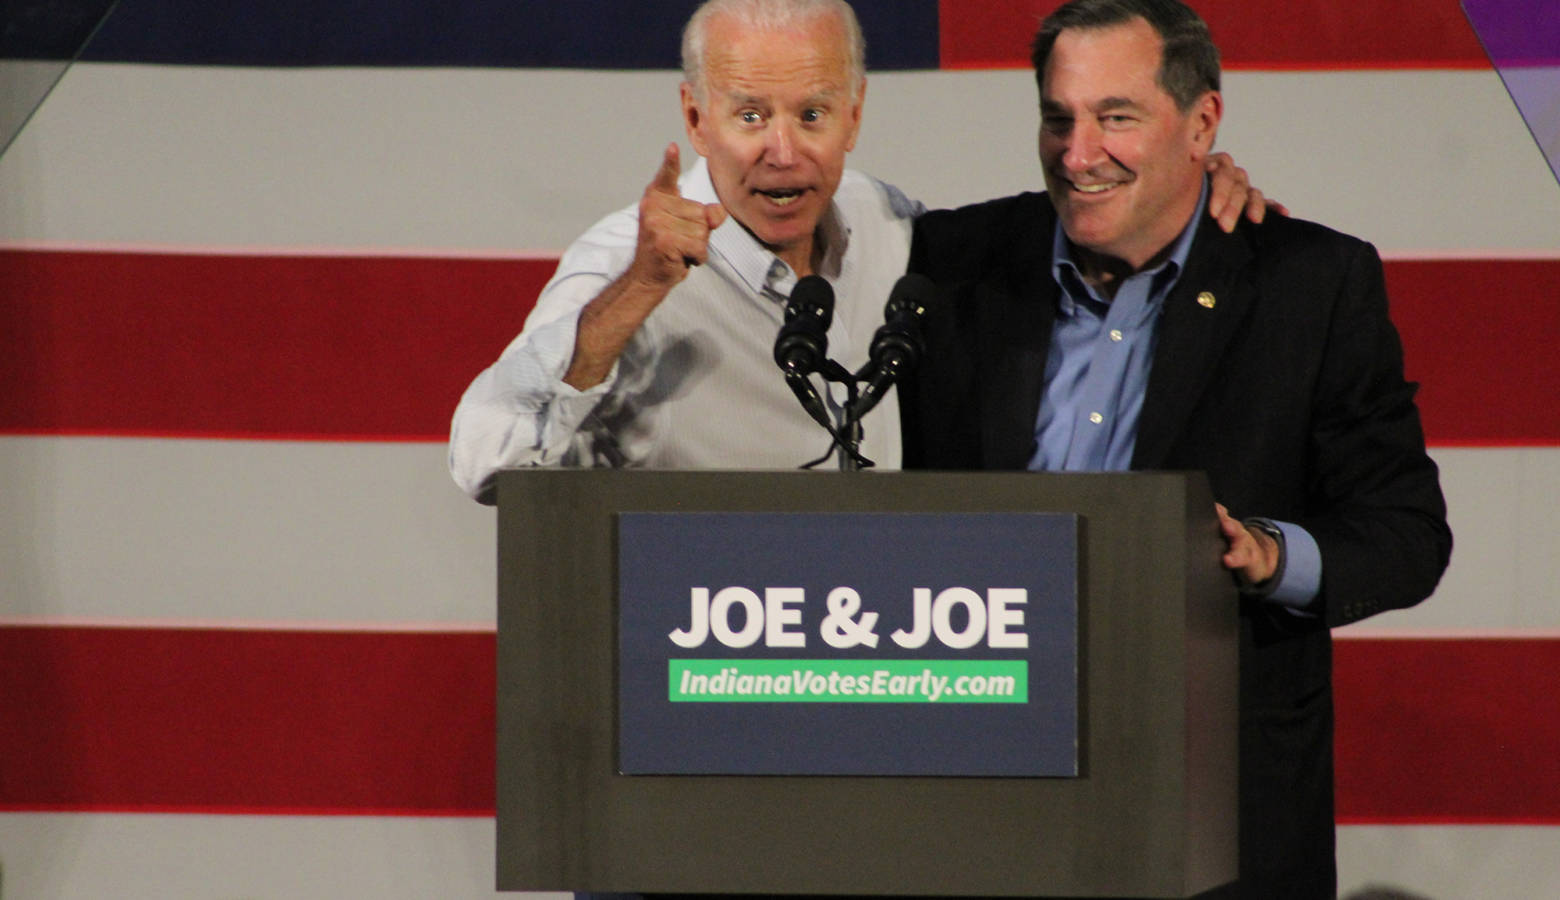 Former Vice President Joe Biden joins incumbent U.S. Sen. Joe Donnelly (D-Ind.) in Hammond Friday. (Samantha Horton/IPB News)